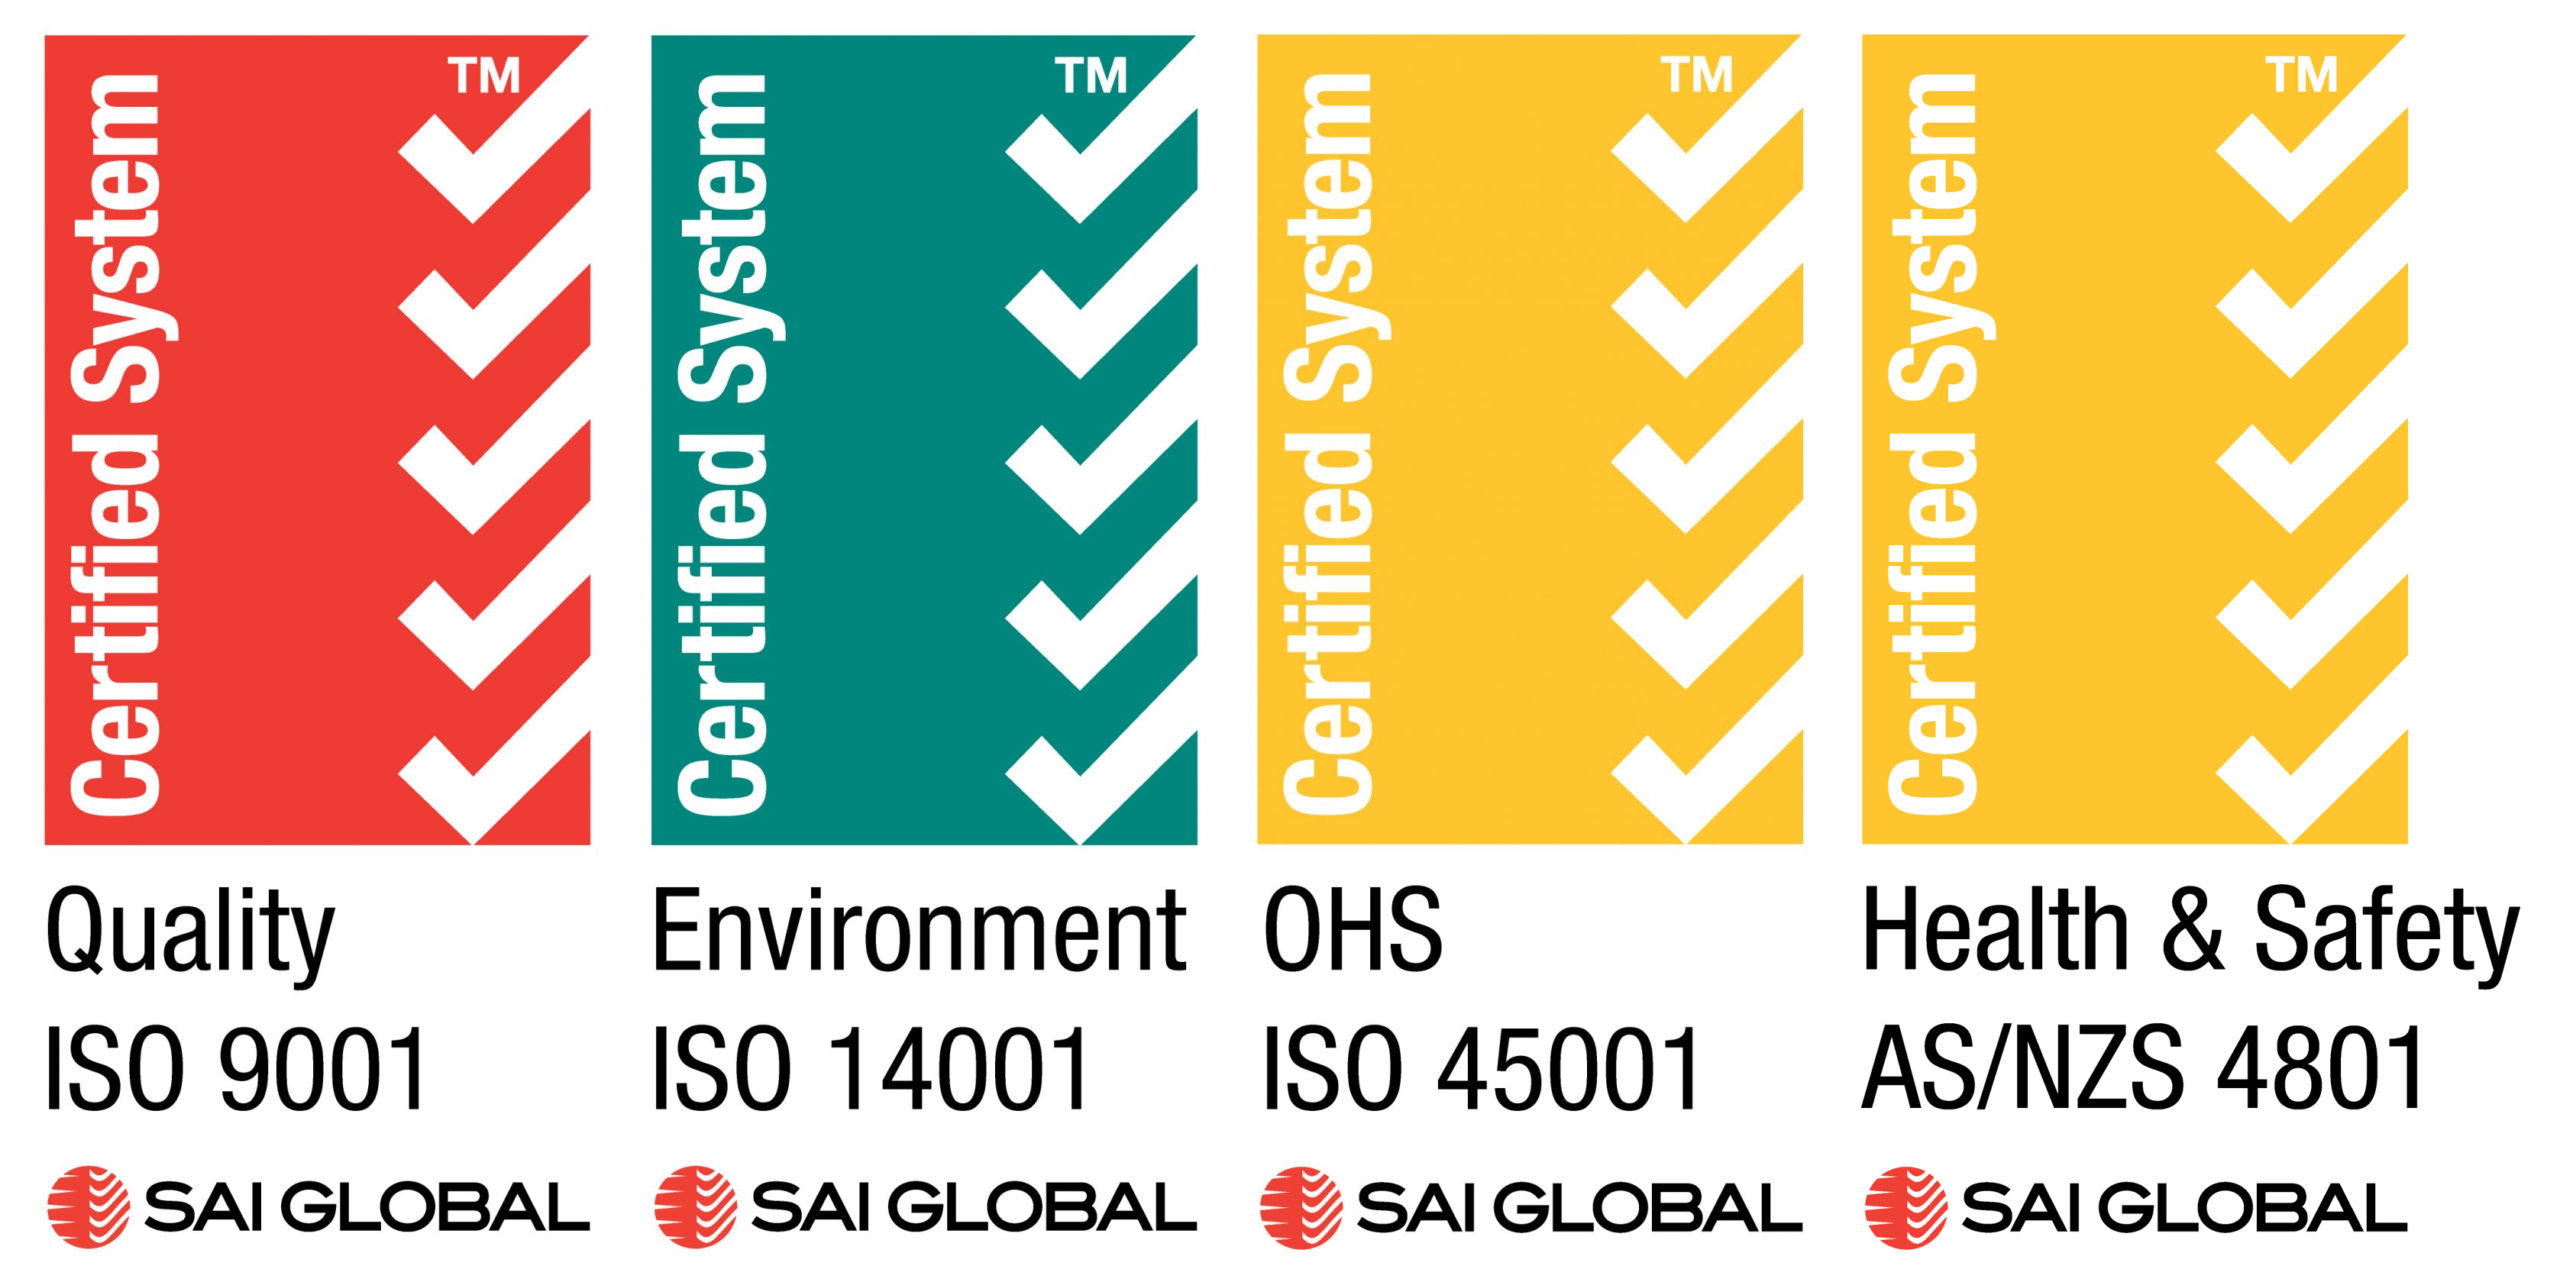 ISO AS-NZS CERTIFICATIONS 2021